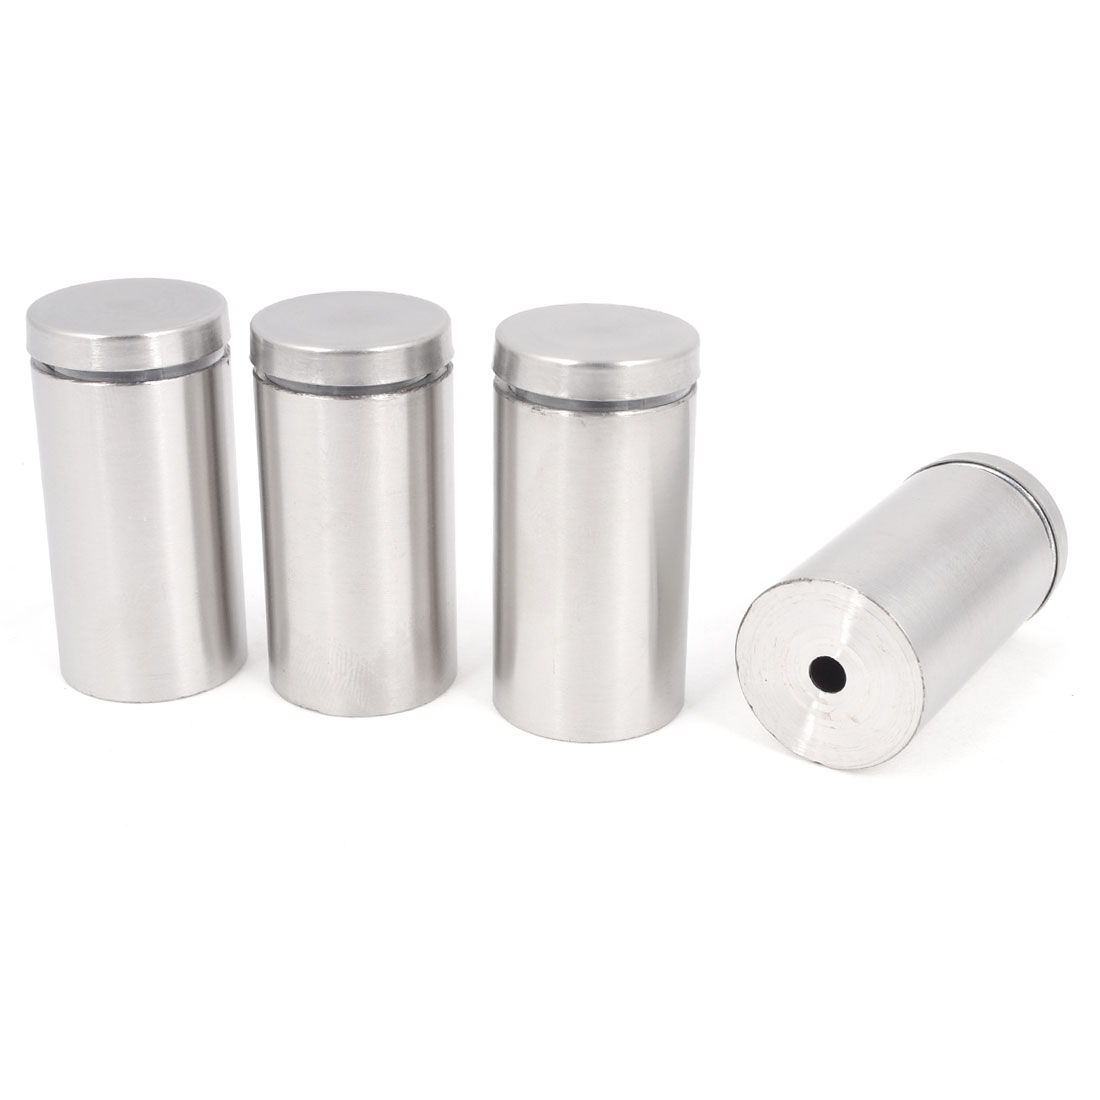 4 Pcs Silver Tone 2mm-10mm Glass Railing Advertising Nail Glass Connector Standoff Holder Clamp Hardware 25mm x 50mm